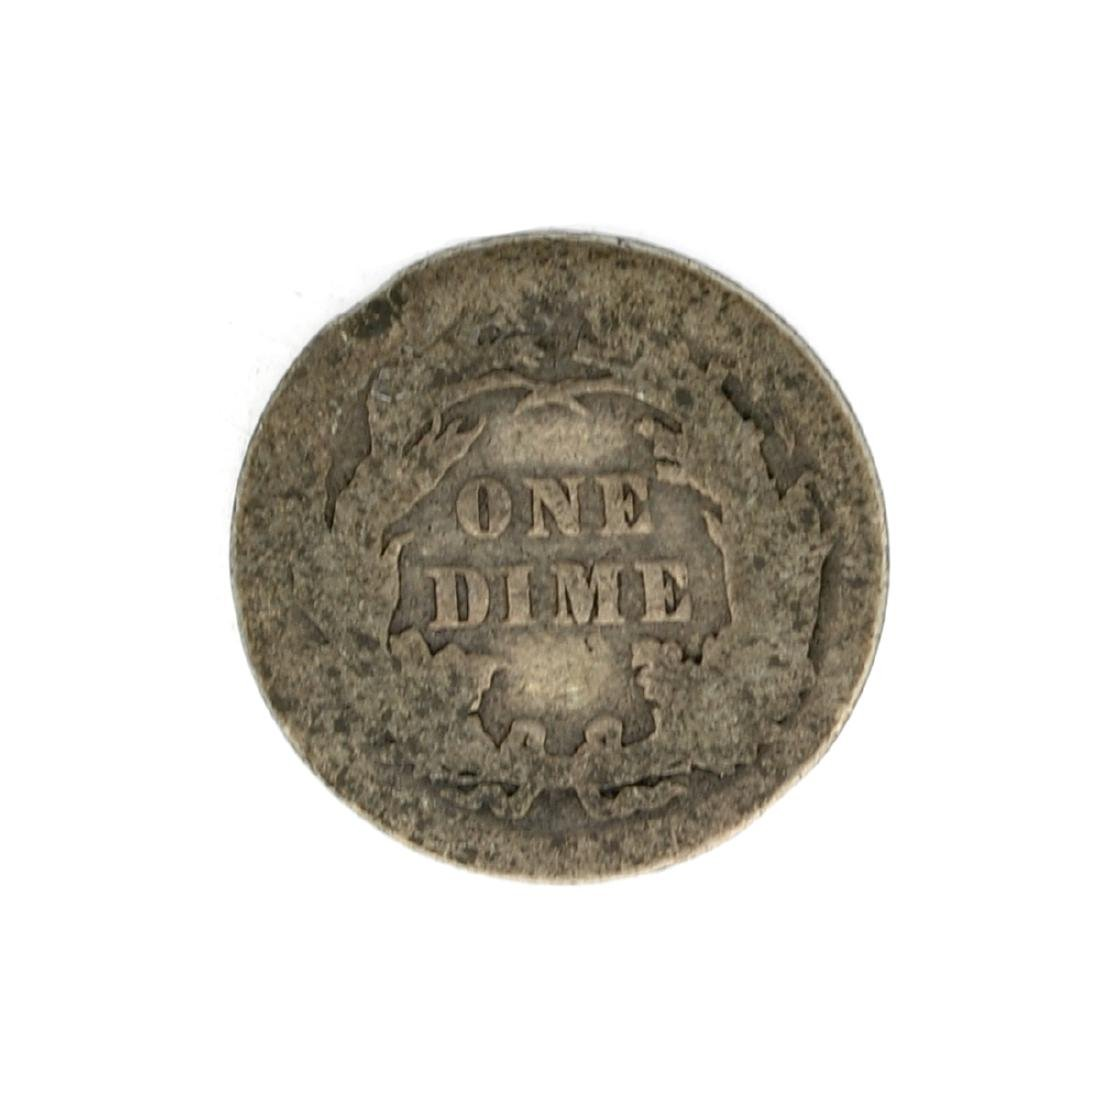 1891 Liberty Seated Dime Coin - 2